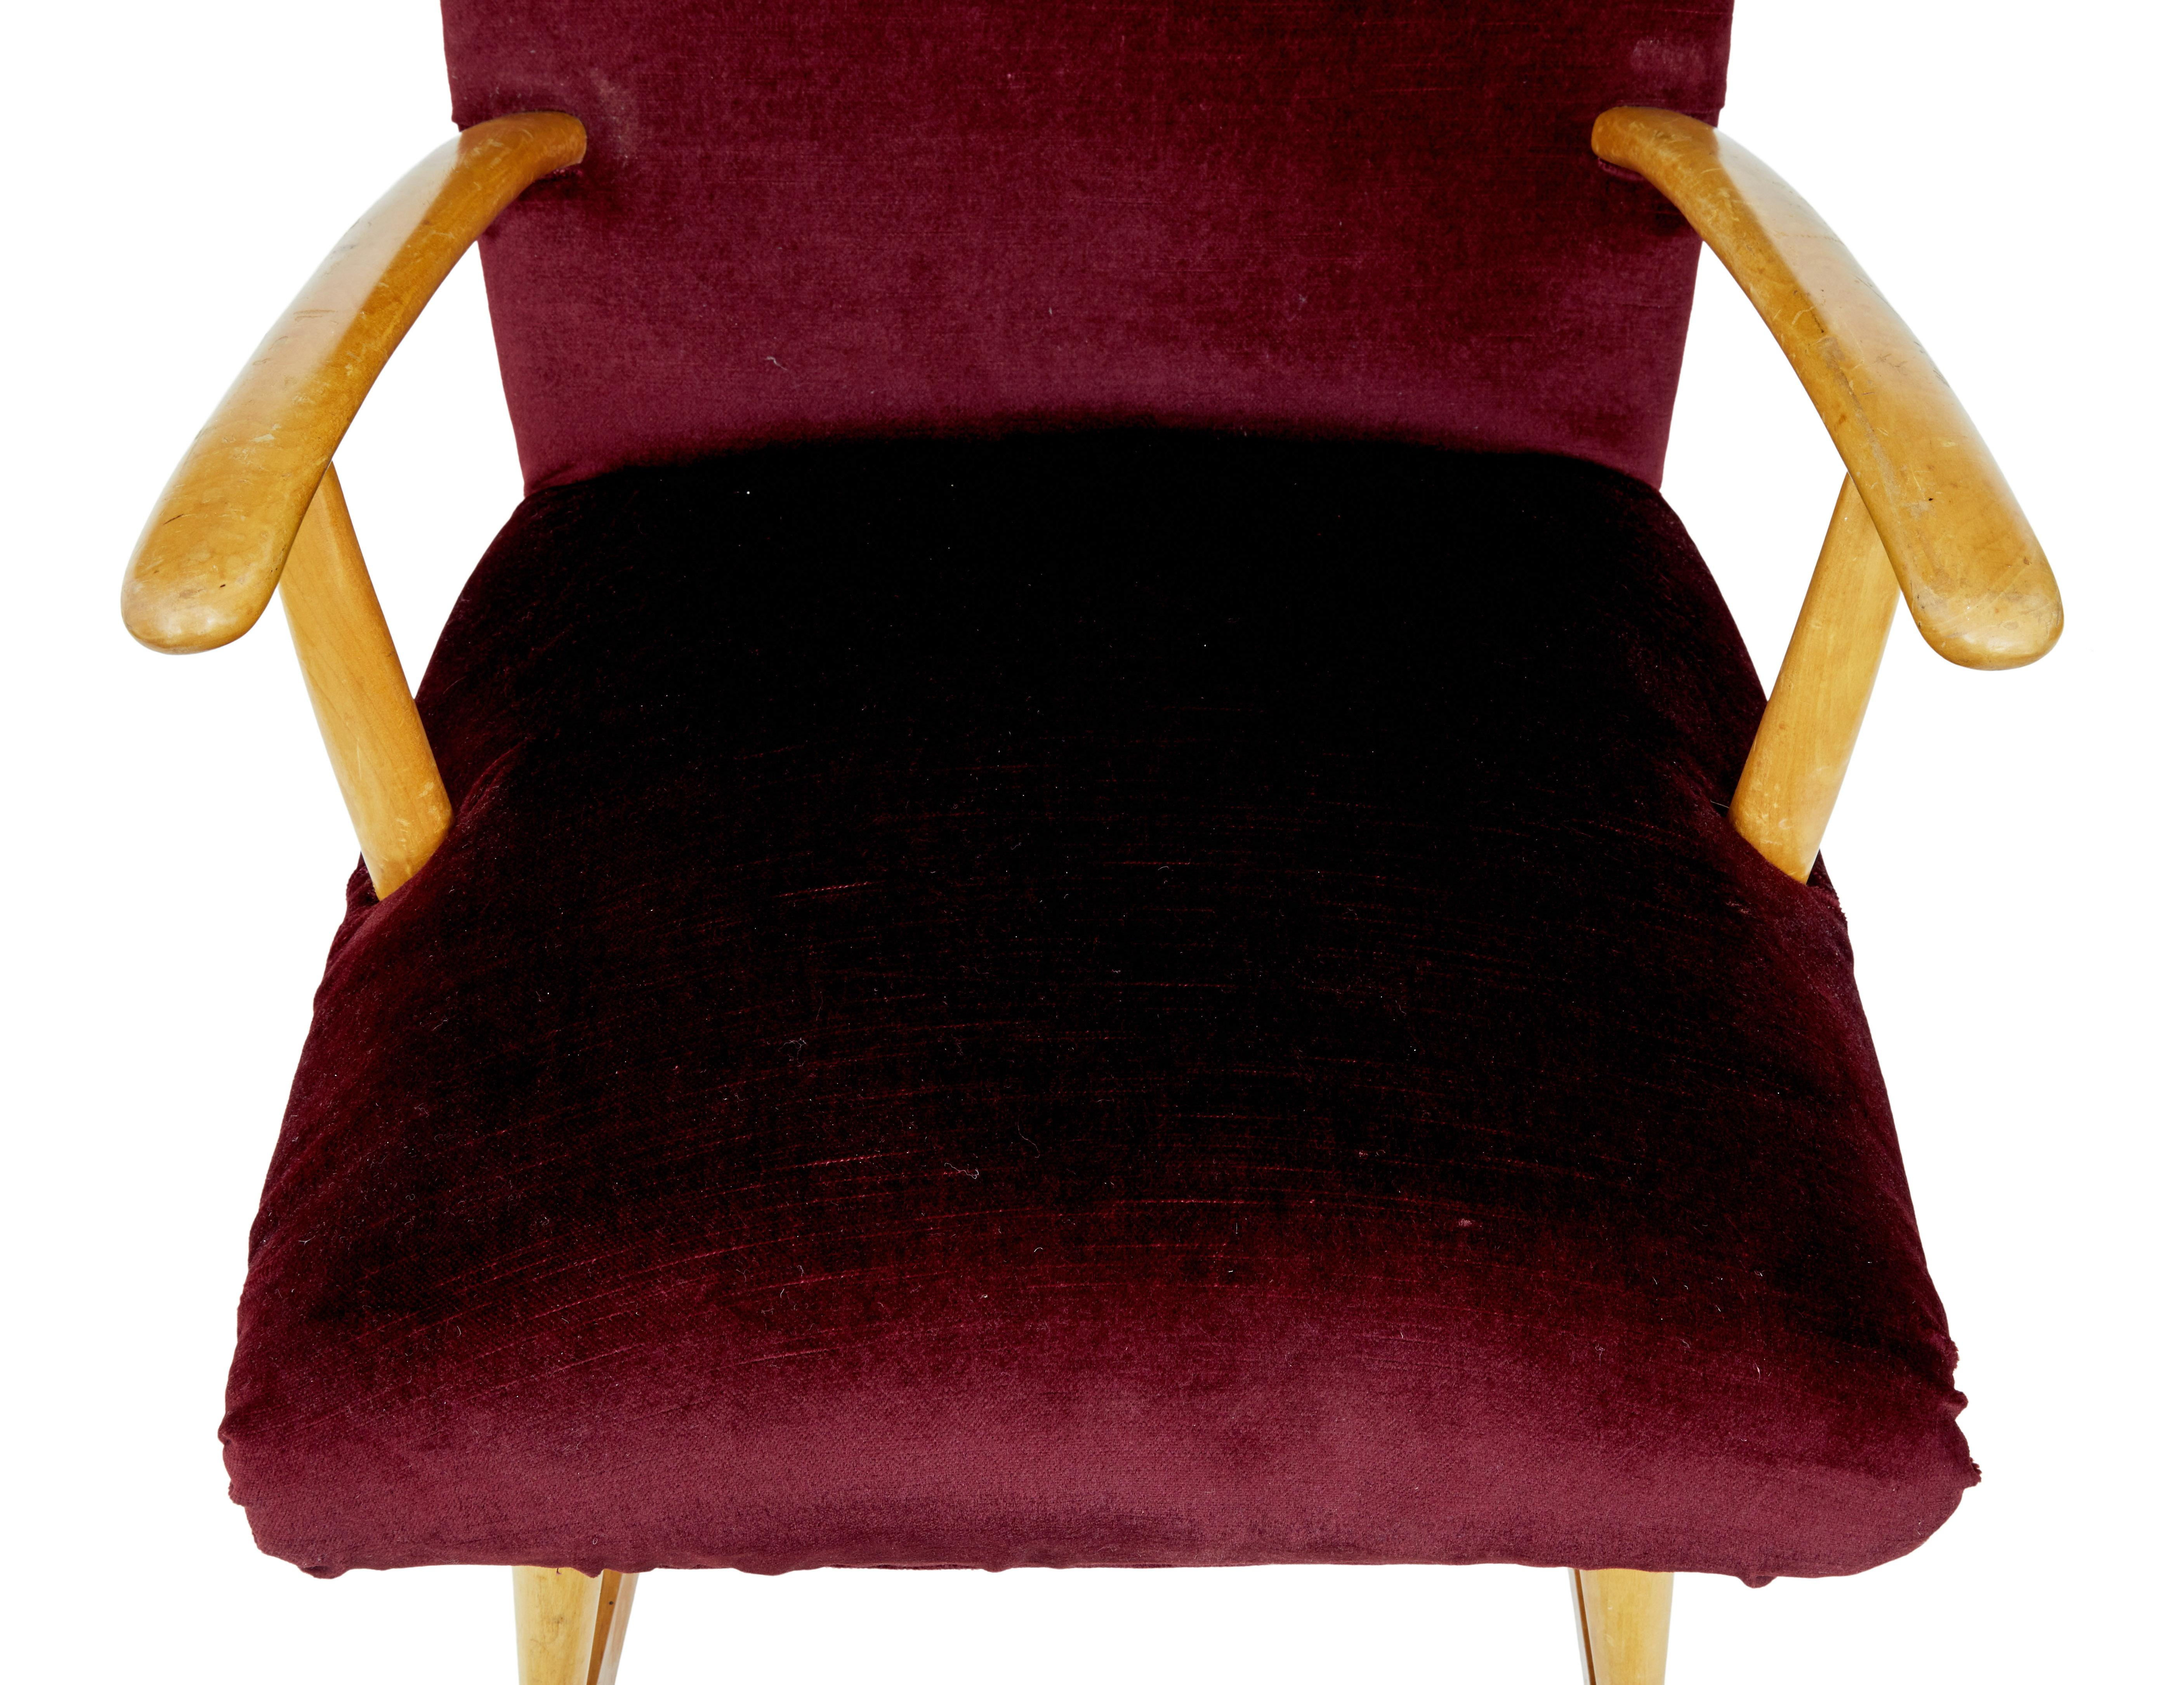 Inspiration about Mid 20Th Century Scandinavian Modern Birch Rocking Chair Intended For Mid Century Birch Rocking Chairs (#16 of 20)